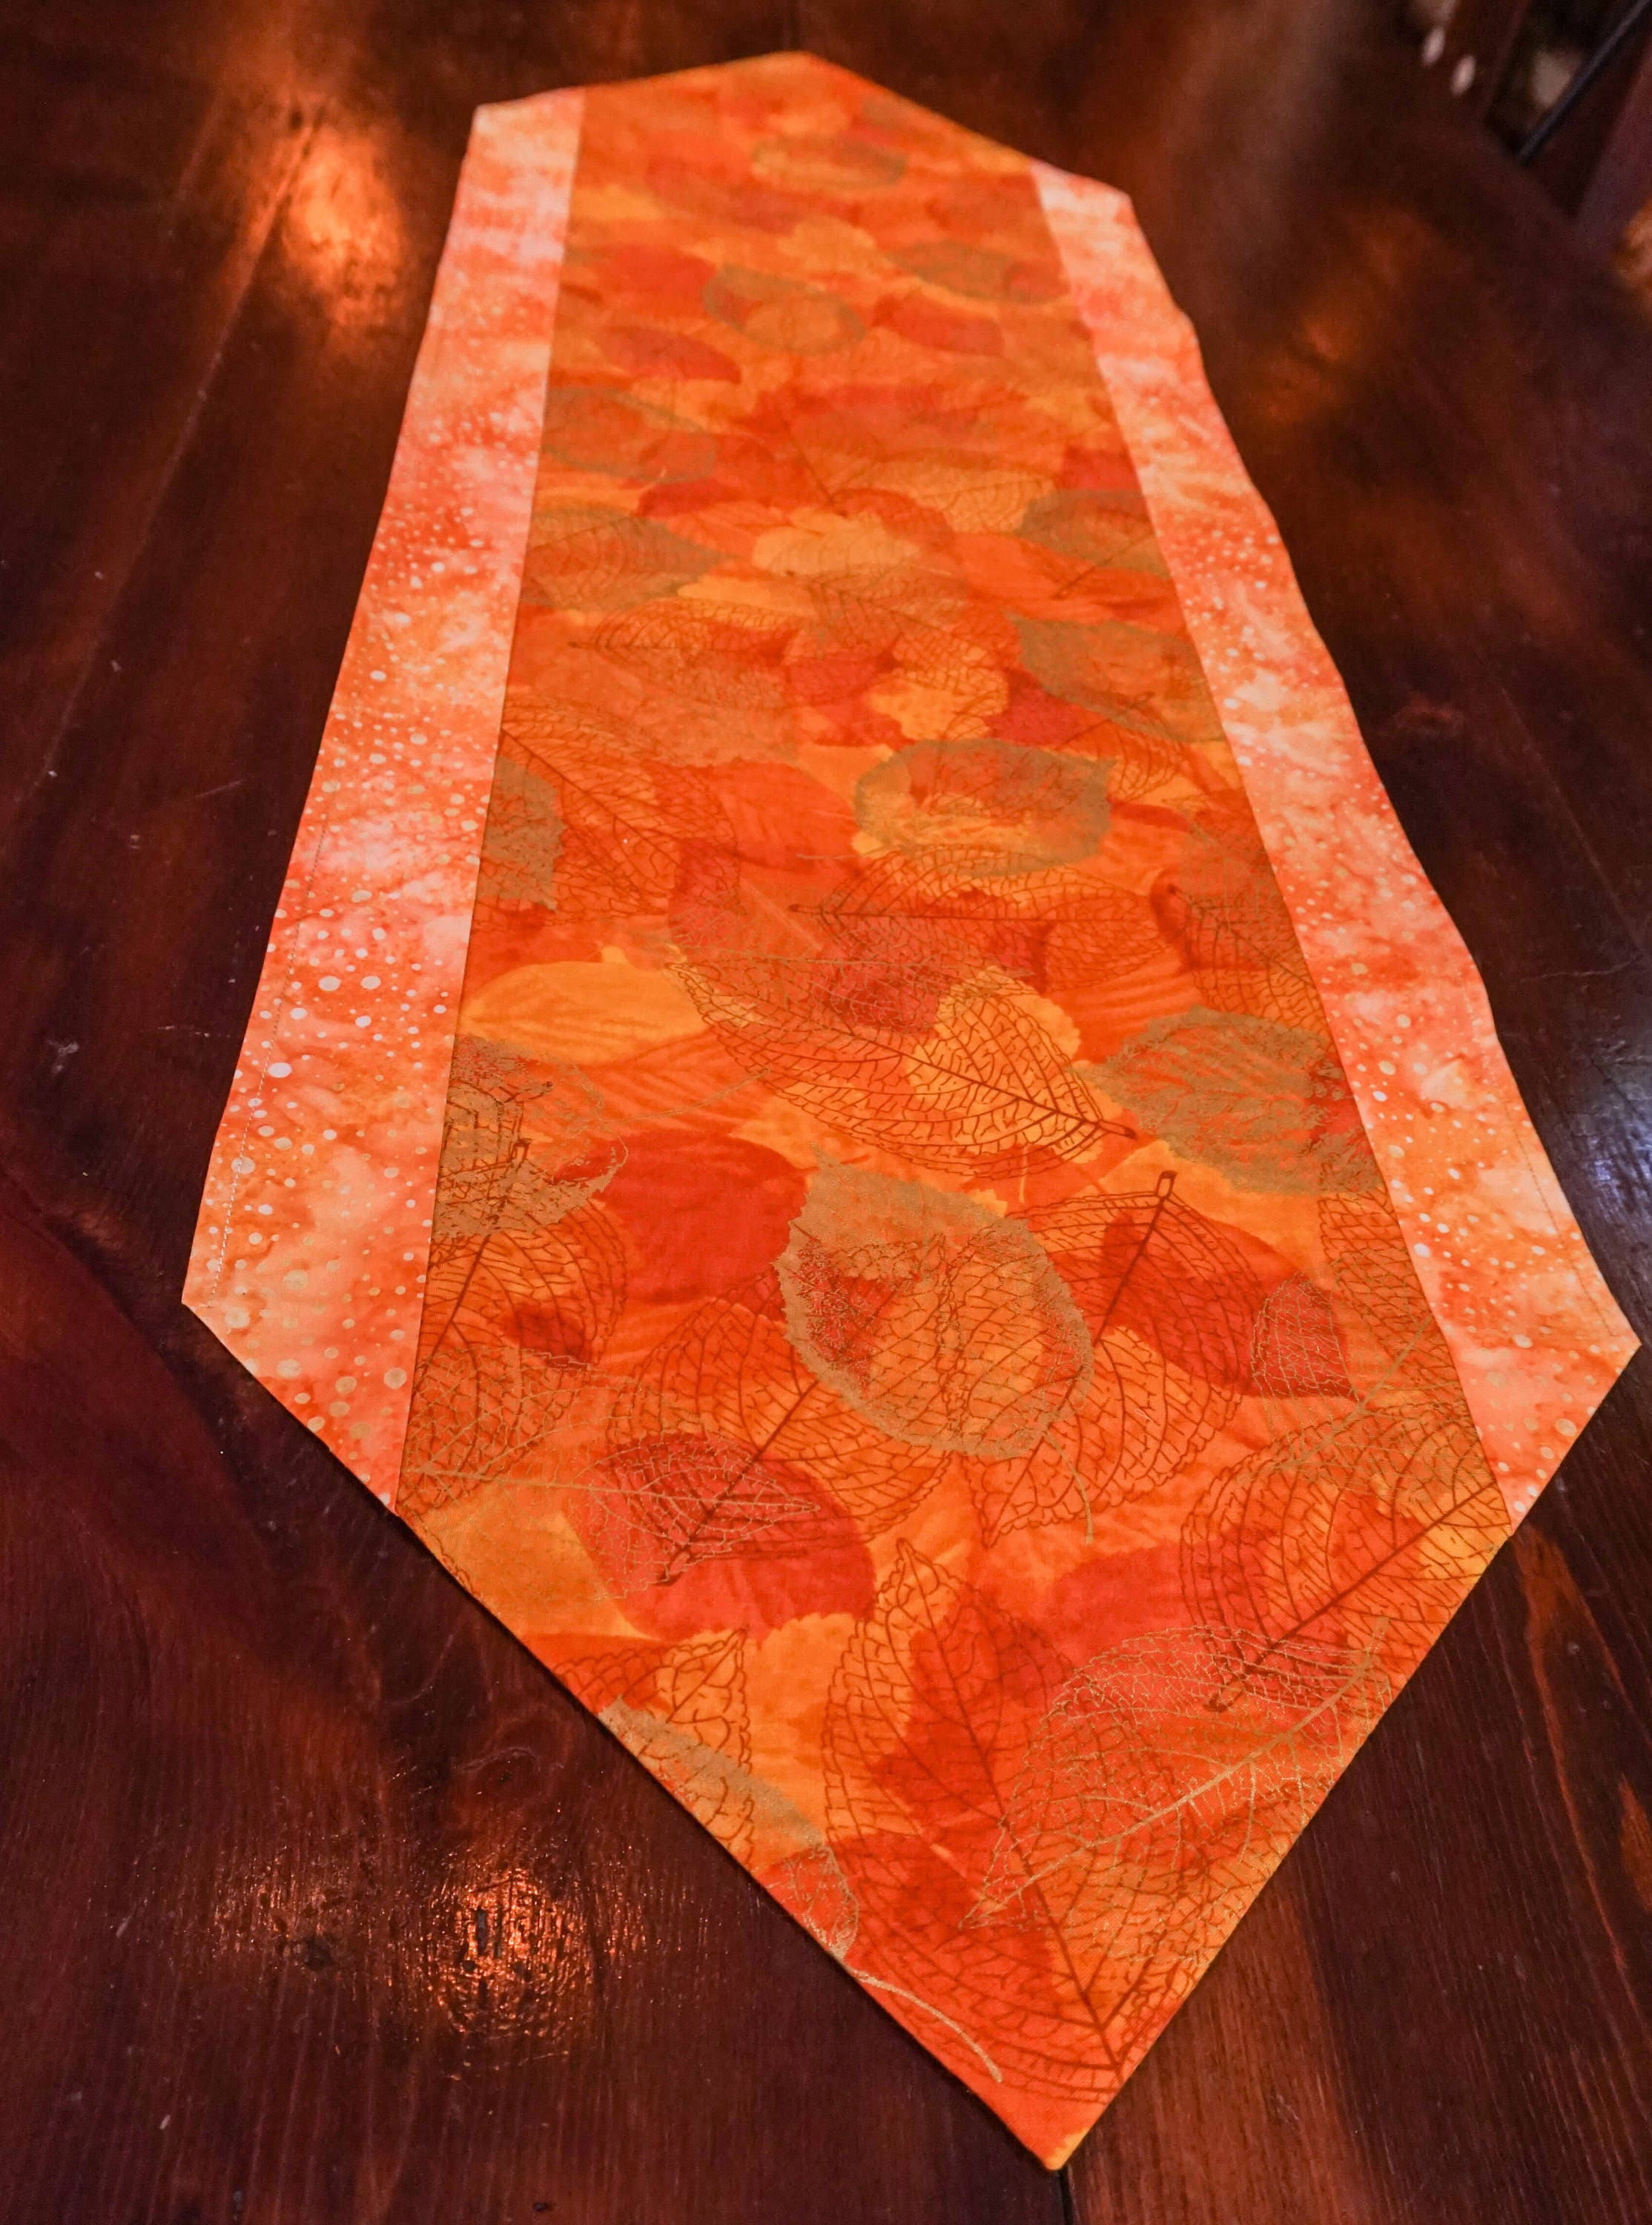 Metallic Gold Table Runner Rustic Decor Orange Decor Dining Room Decor Table  Linen Boho Home Decor Gift Lodge Decor Watercolor Home Decor